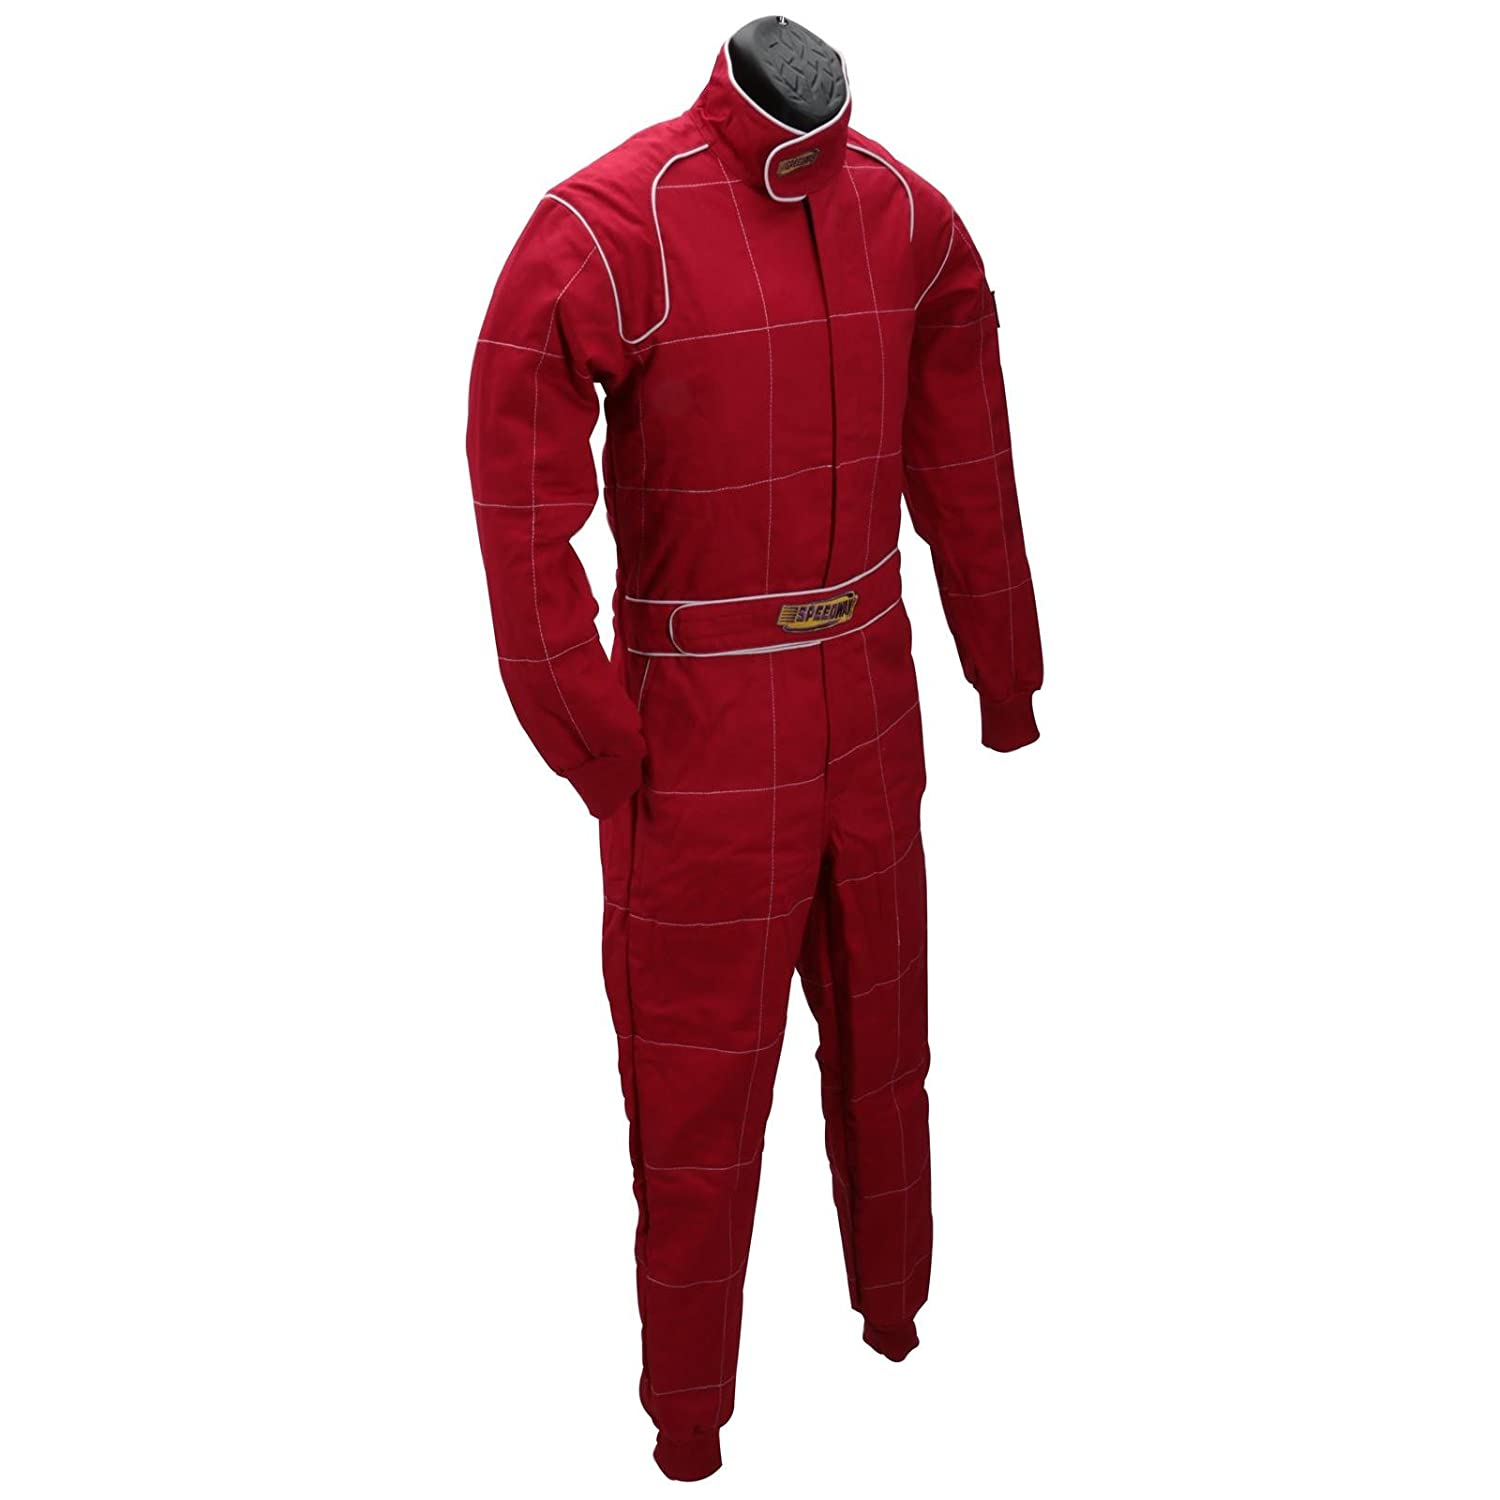 Racing Fire Suits >> Blue 2 Layer Racing Suit One Piece Sfi 5 Rated Large